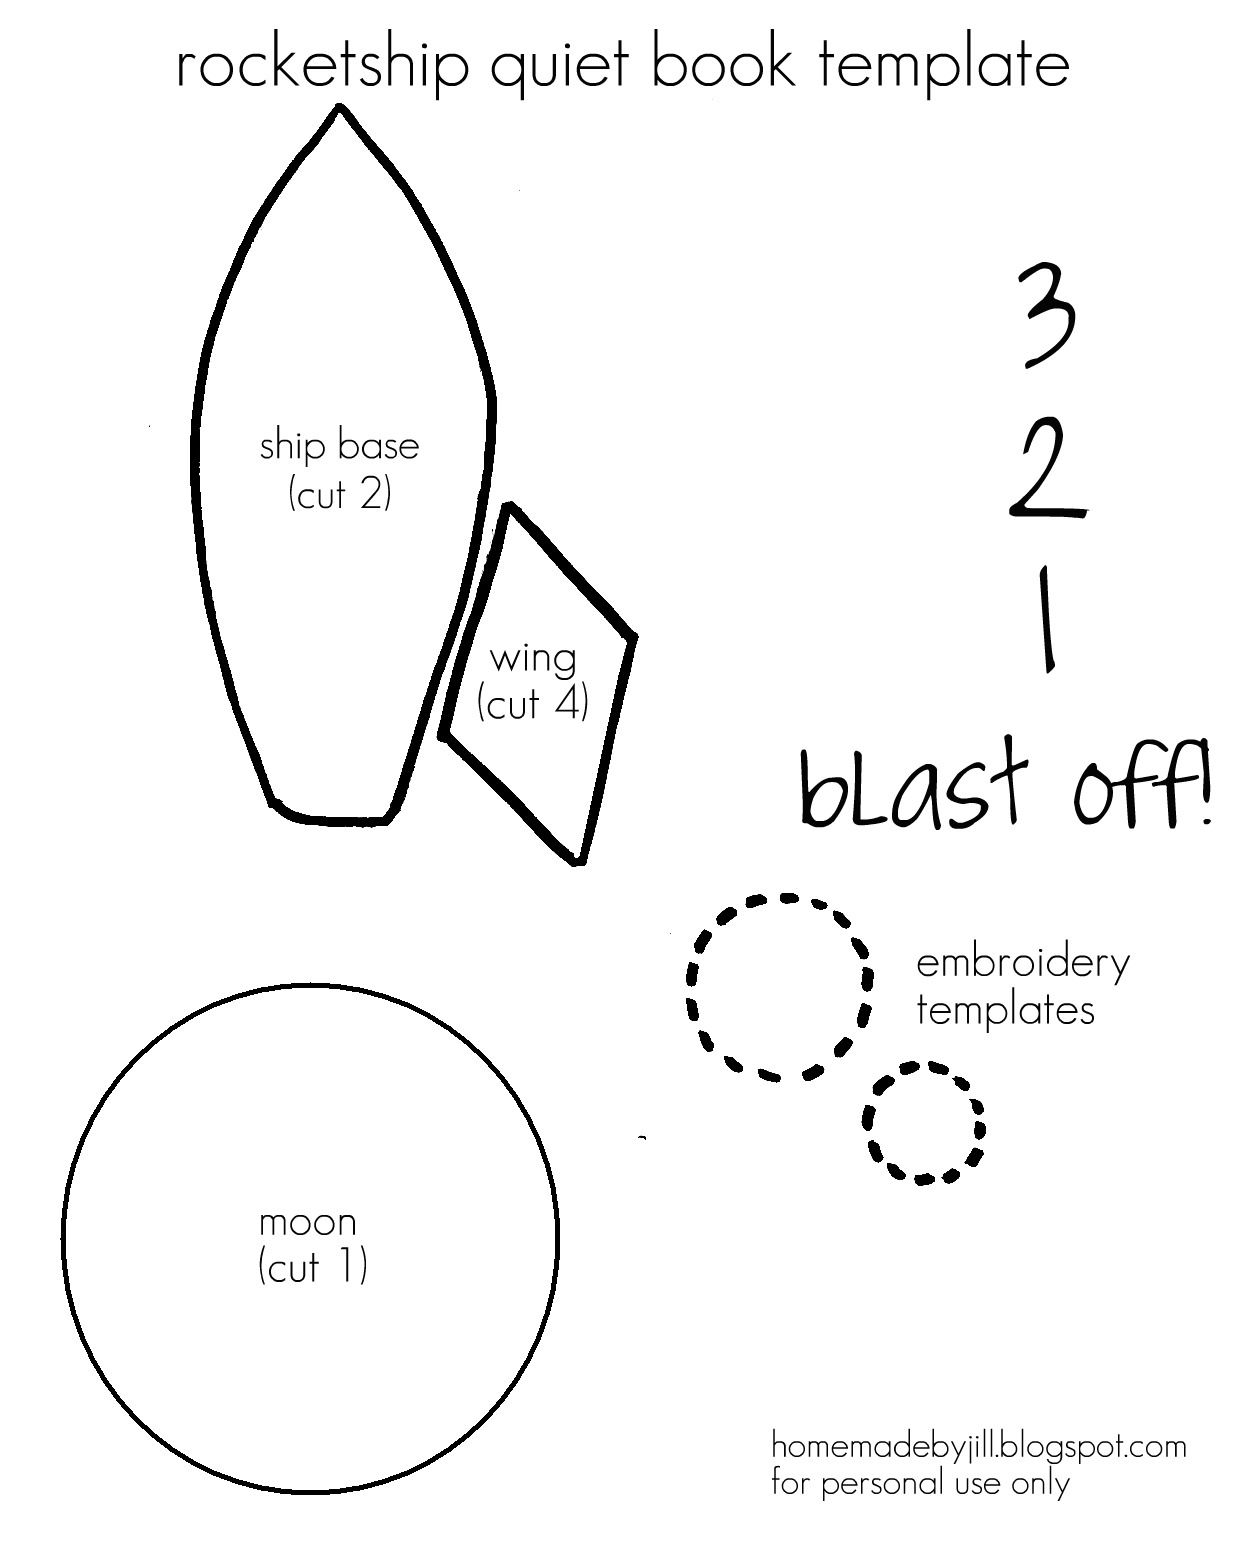 Good Morning Below Are Some Templates From My Quiet Book